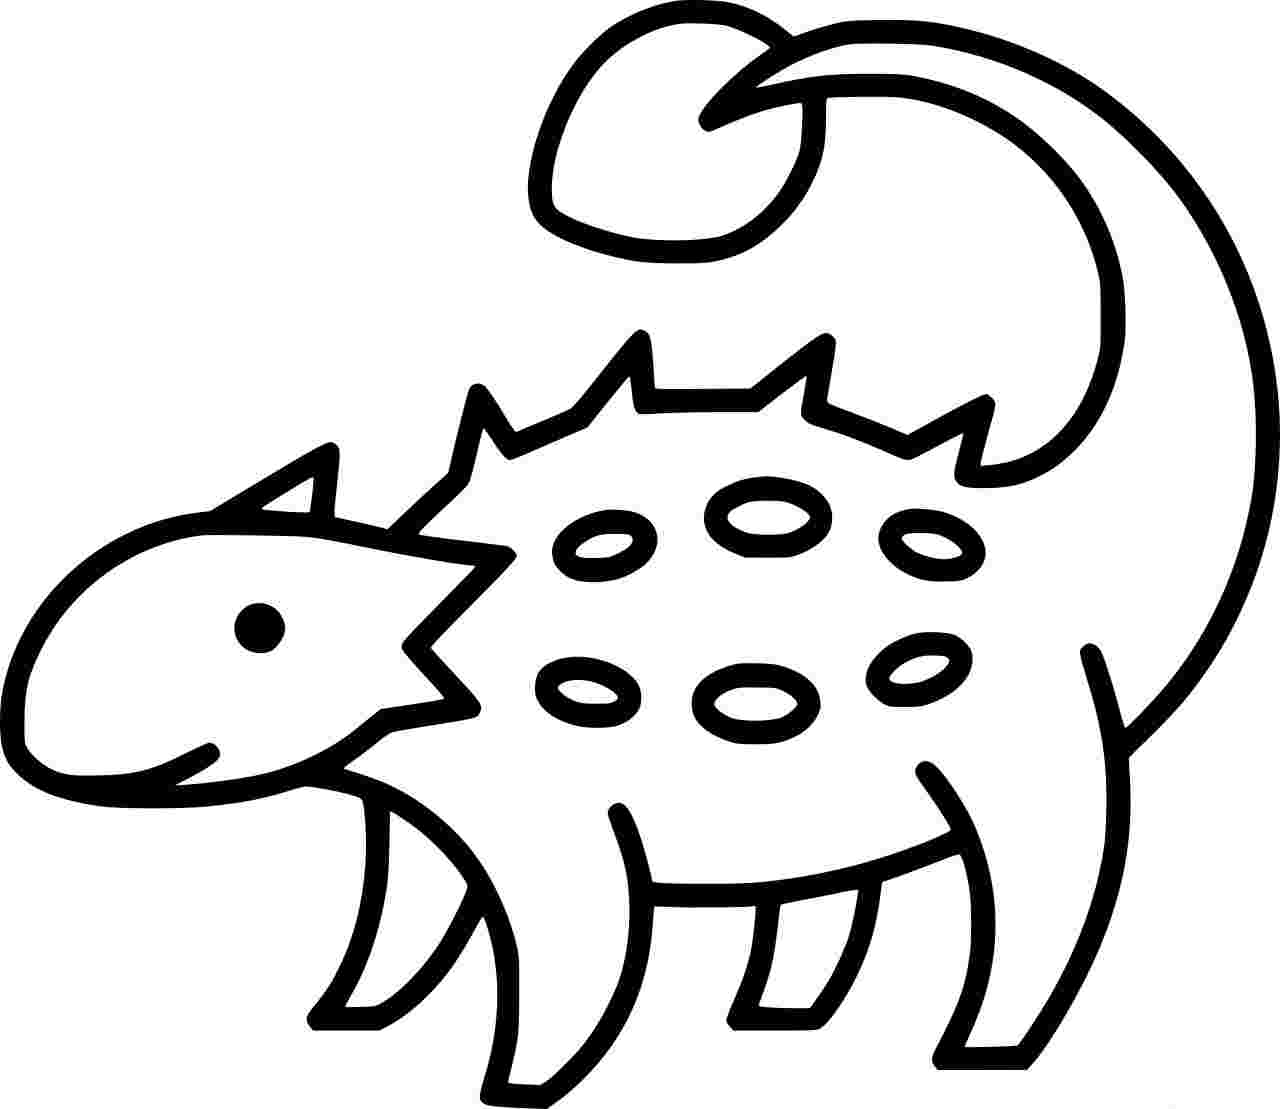 Ankylosaurus Outline Coloring Page